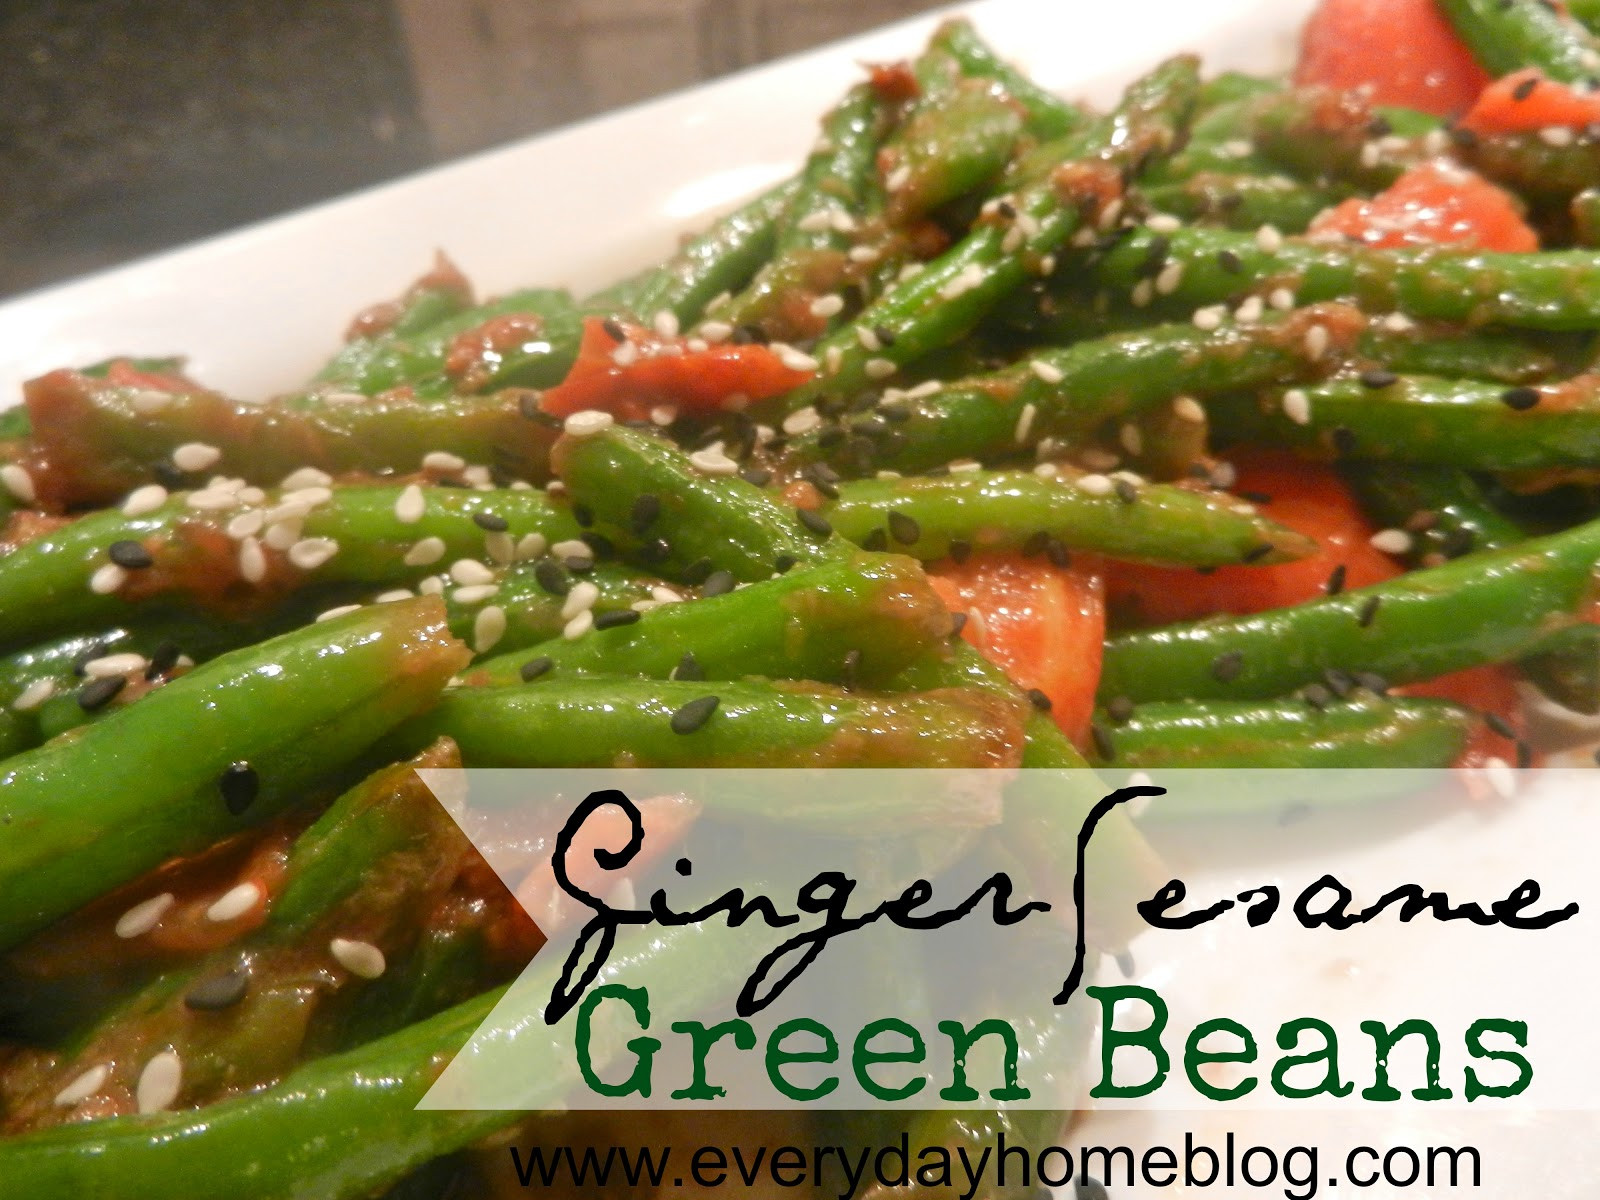 Healthy Green Bean Recipes  Healthy Green Bean Recipe Tasty Tuesday The Everyday Home